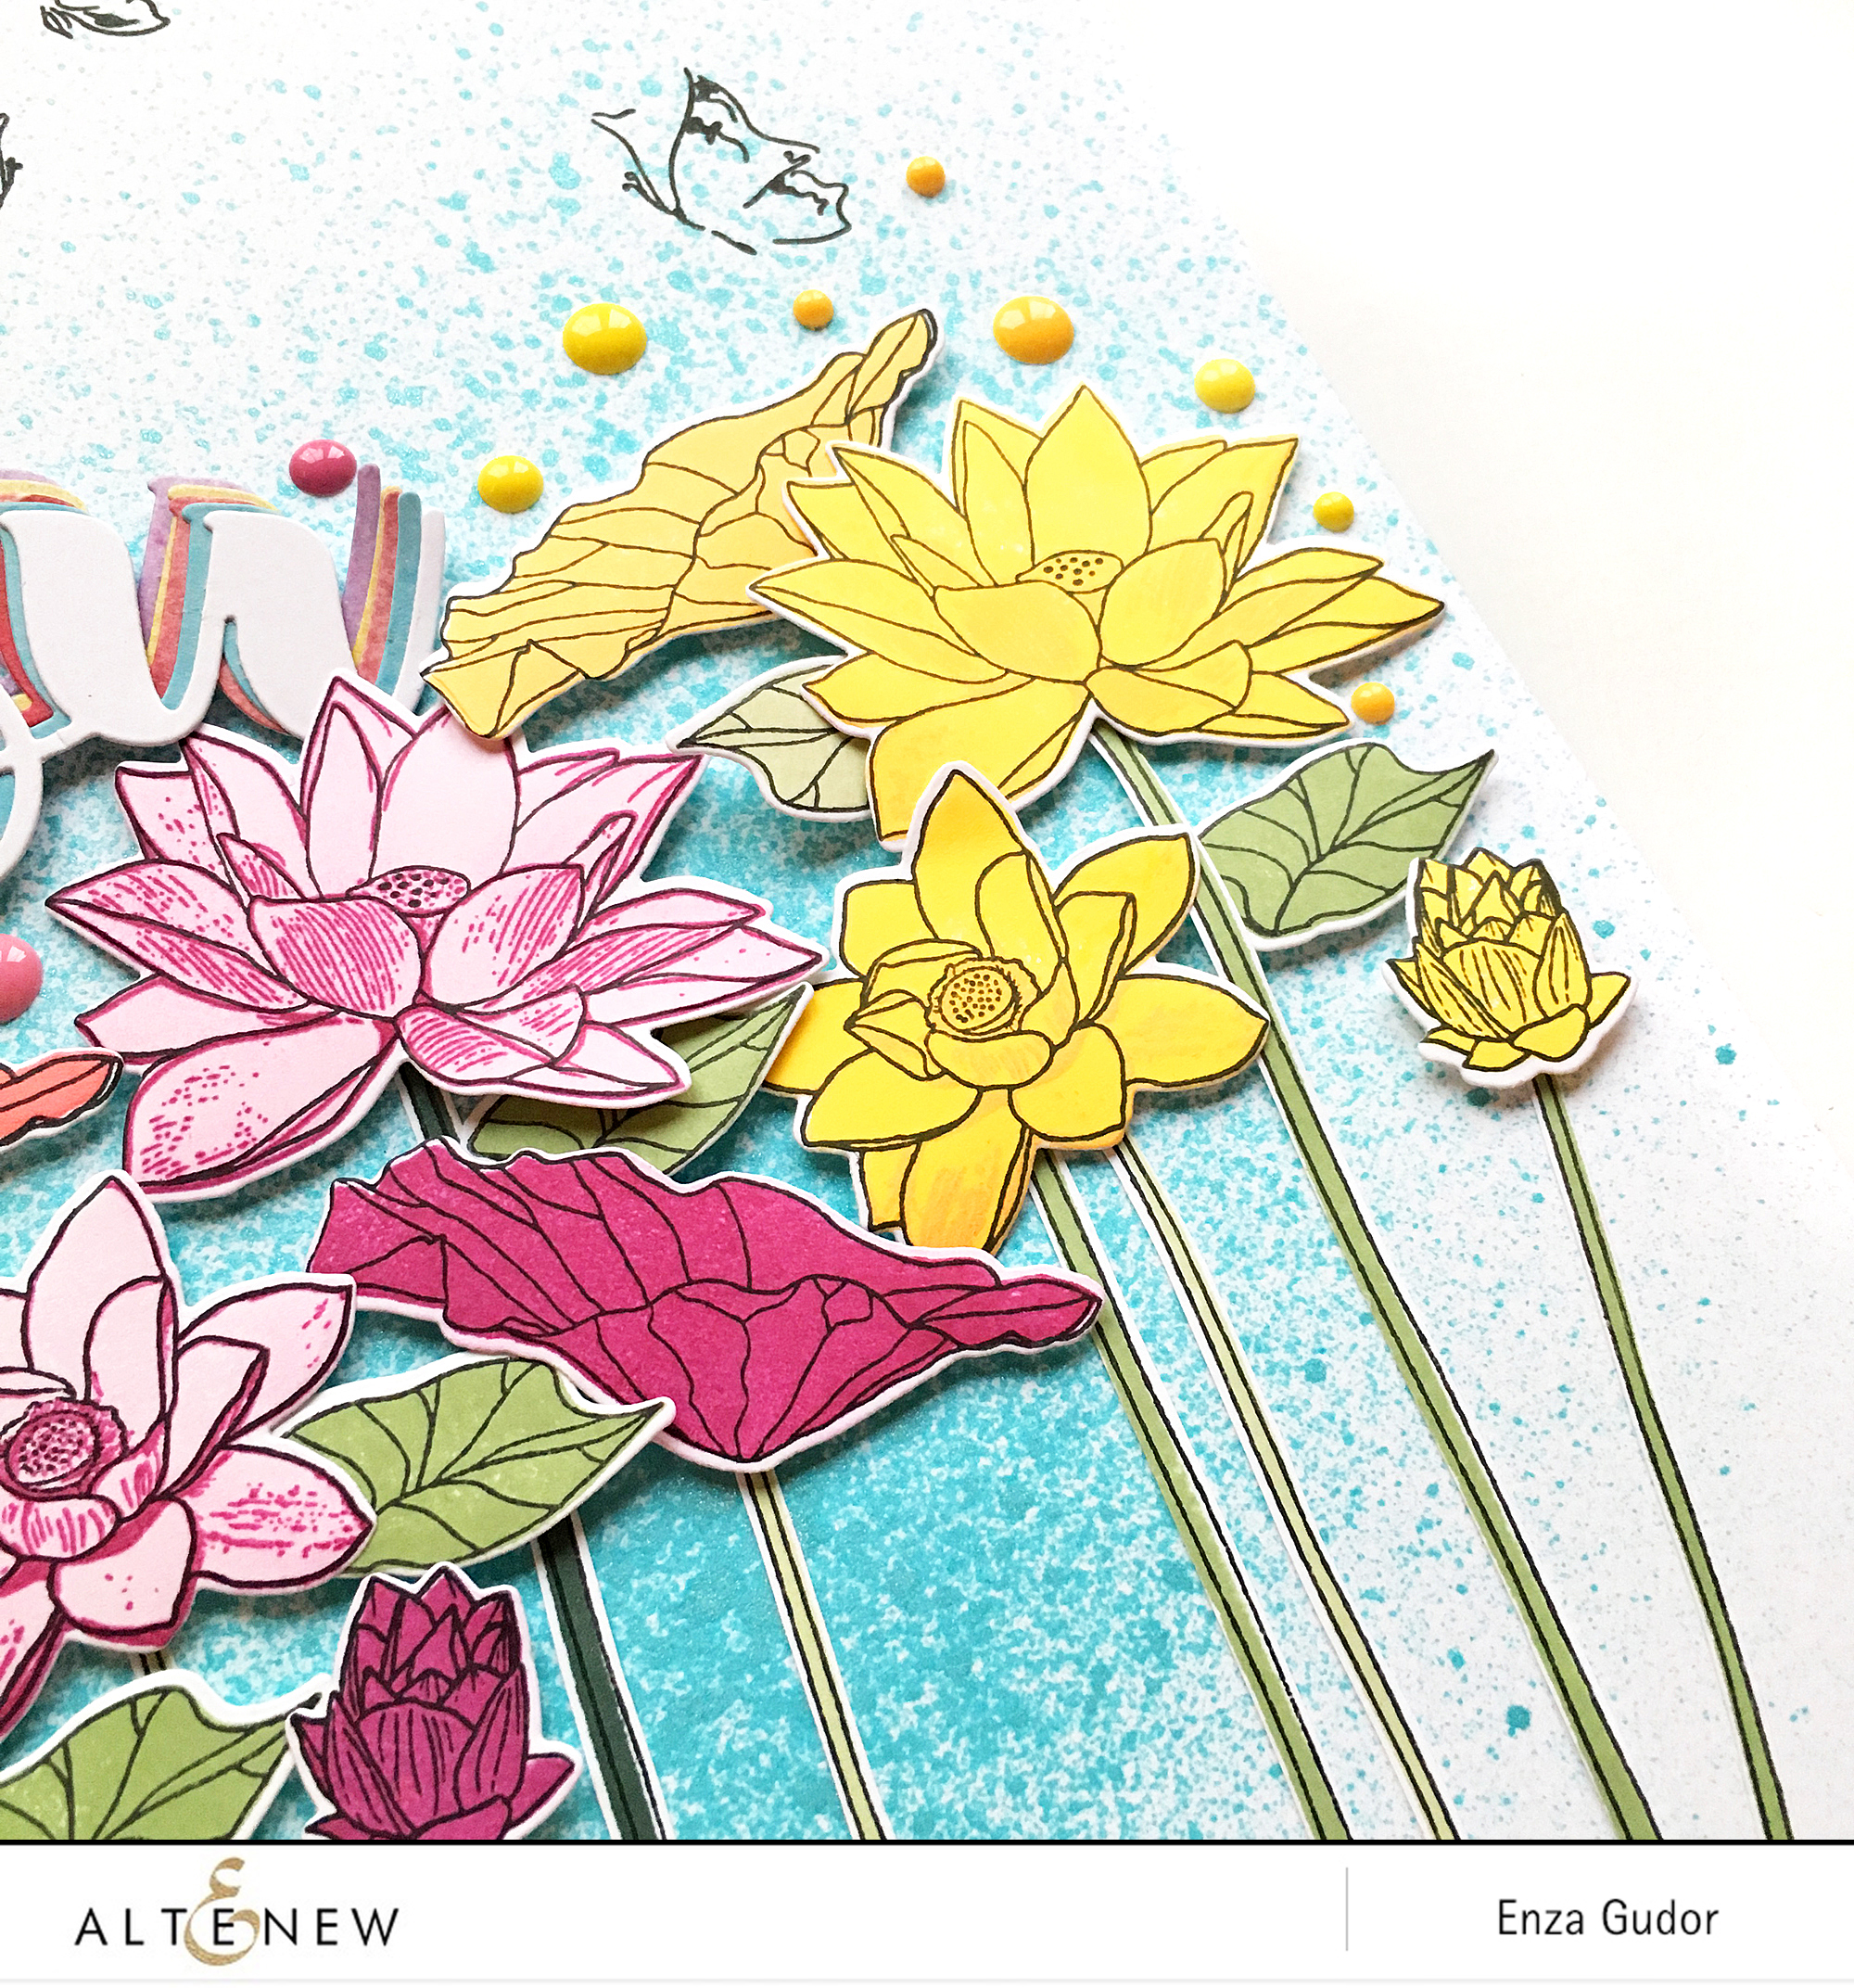 Rainbow flowers layout by @enzamg for @altenew. #scrapbooking #layout #stamping #flowers #altenew